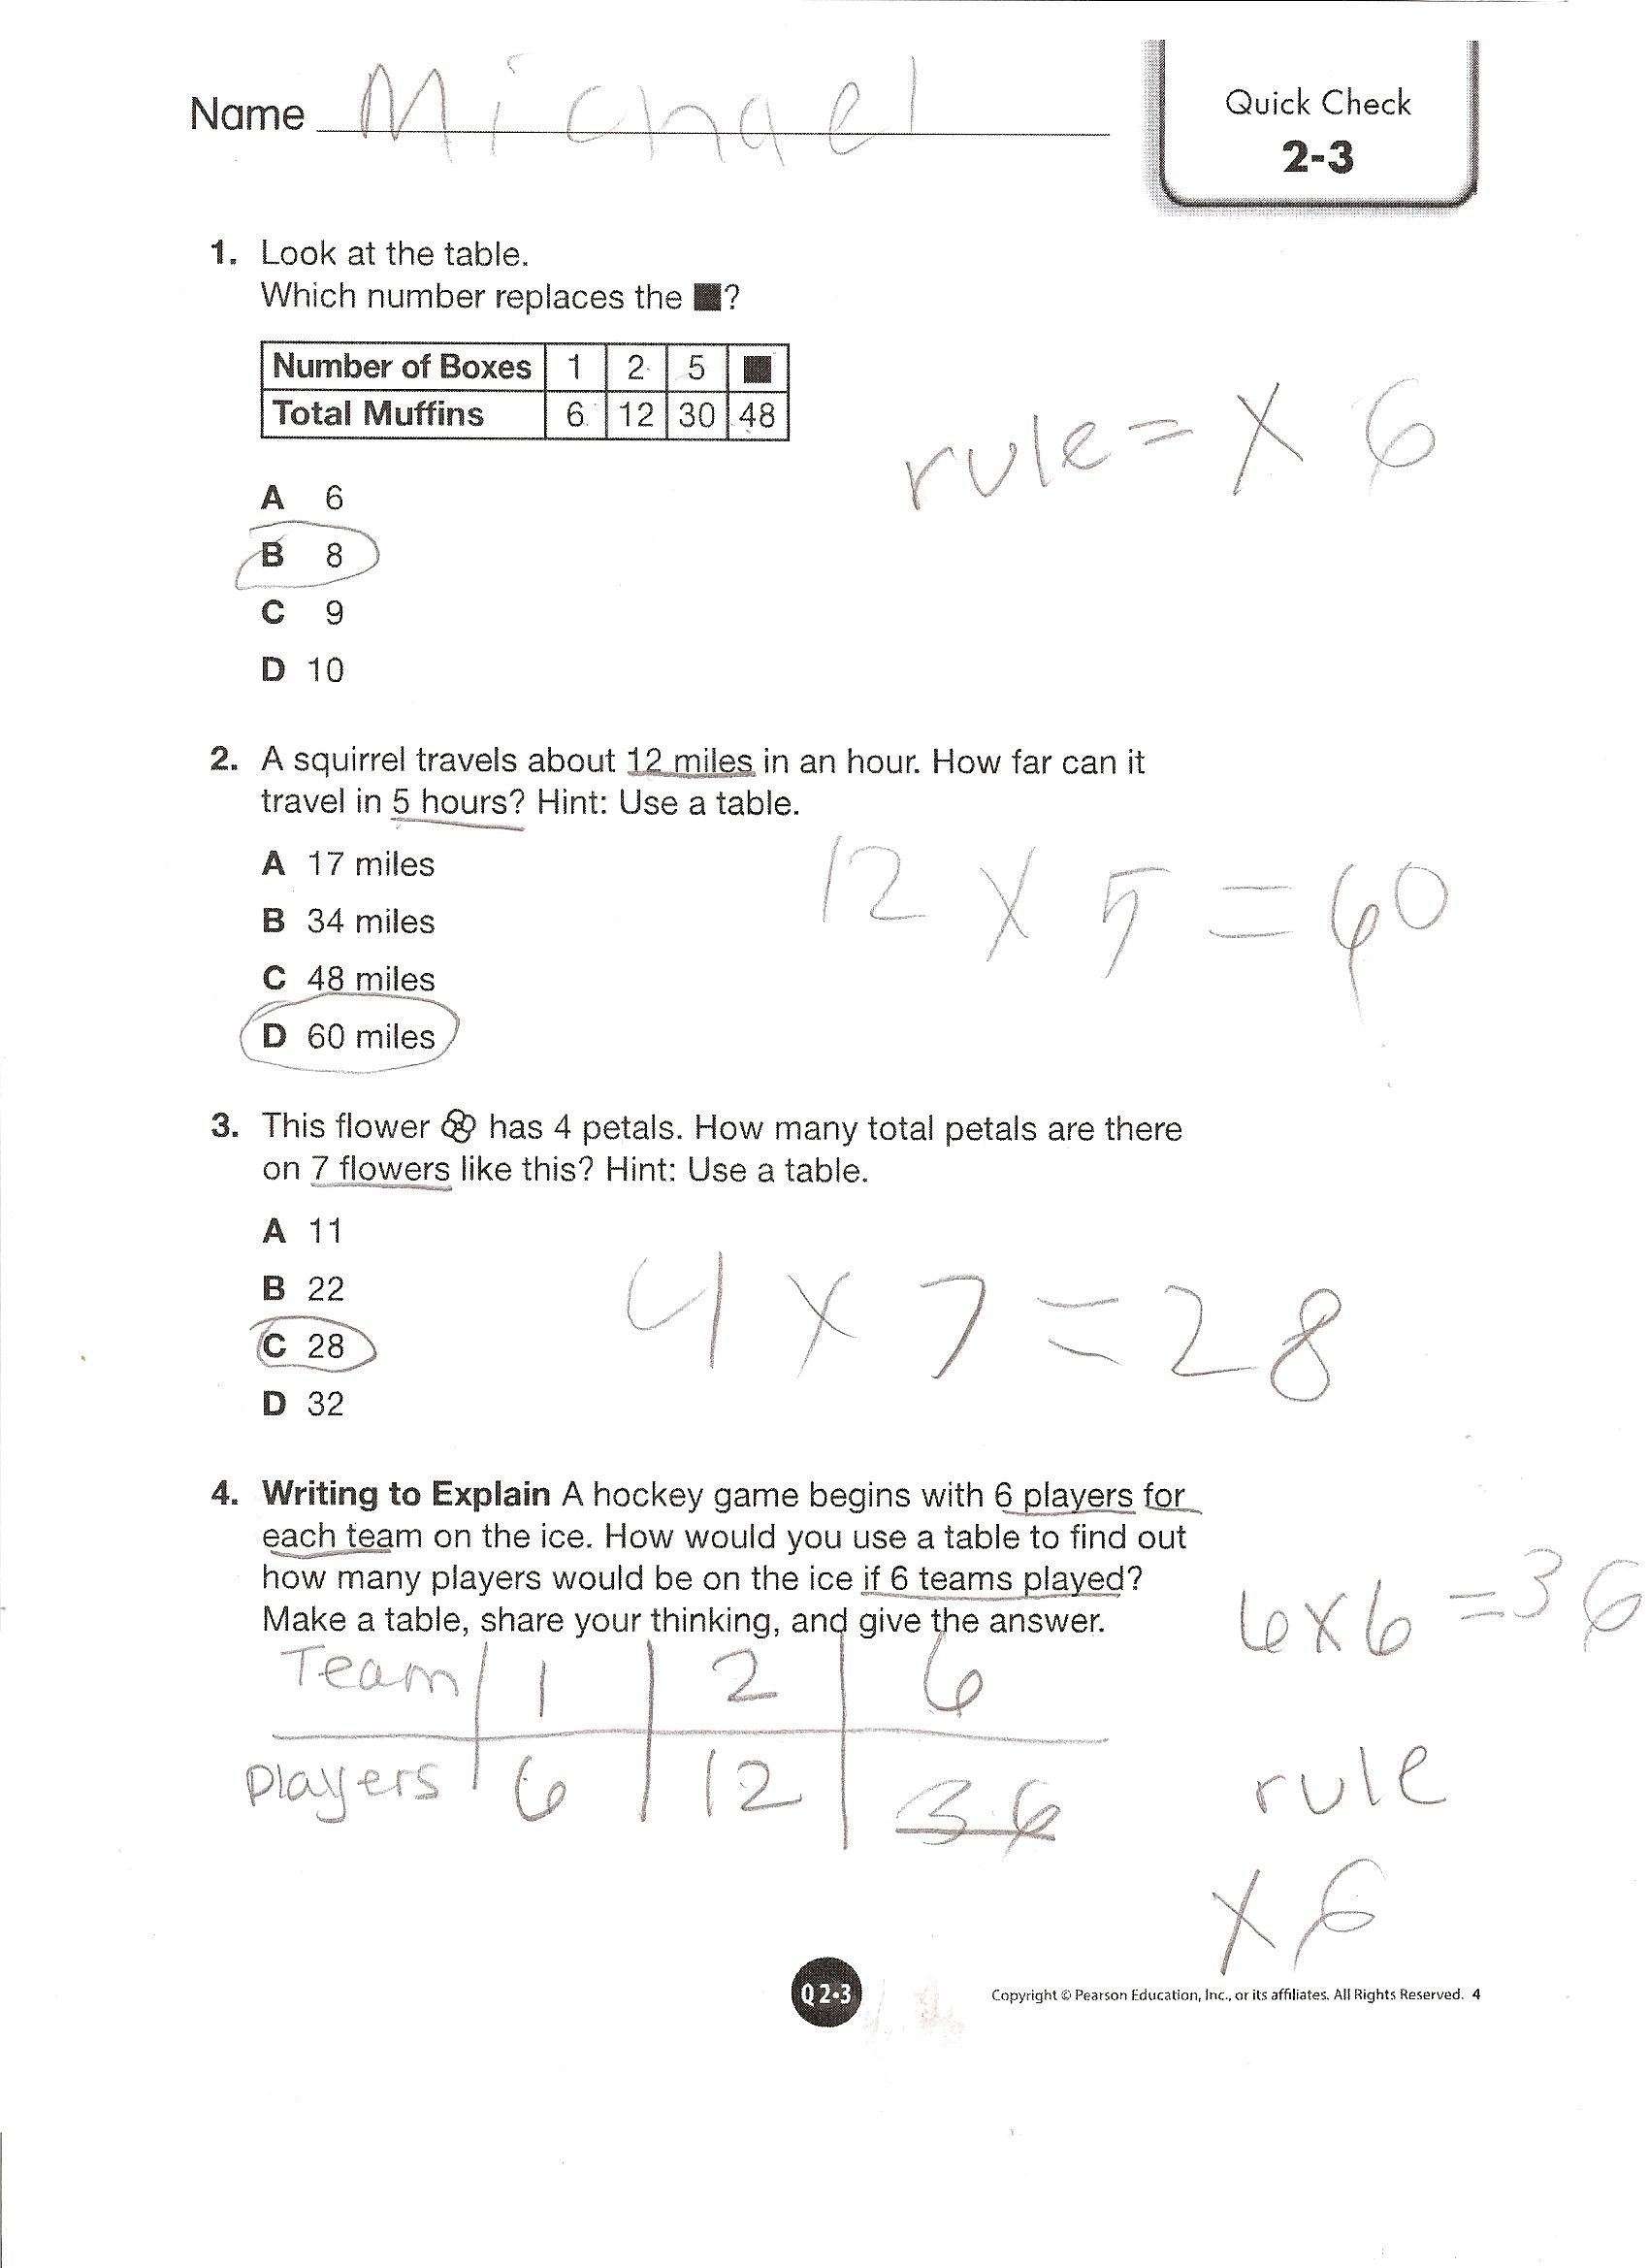 Envision math grade 4 topic 2 3 quick check envision 4th grade envision math grade 4 topic 2 3 quick check fandeluxe Image collections